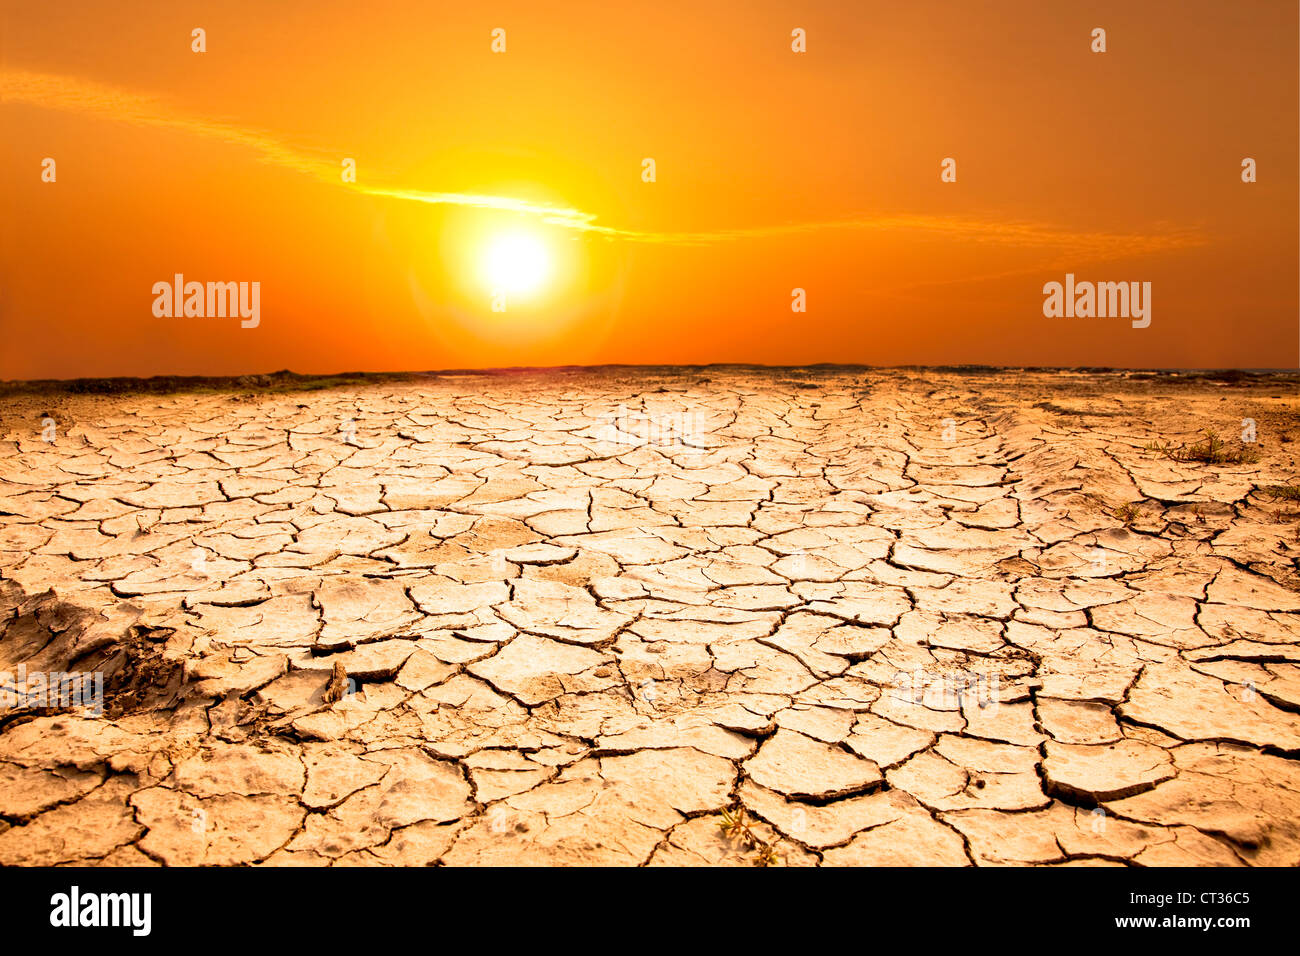 drought land and hot weather - Stock Image